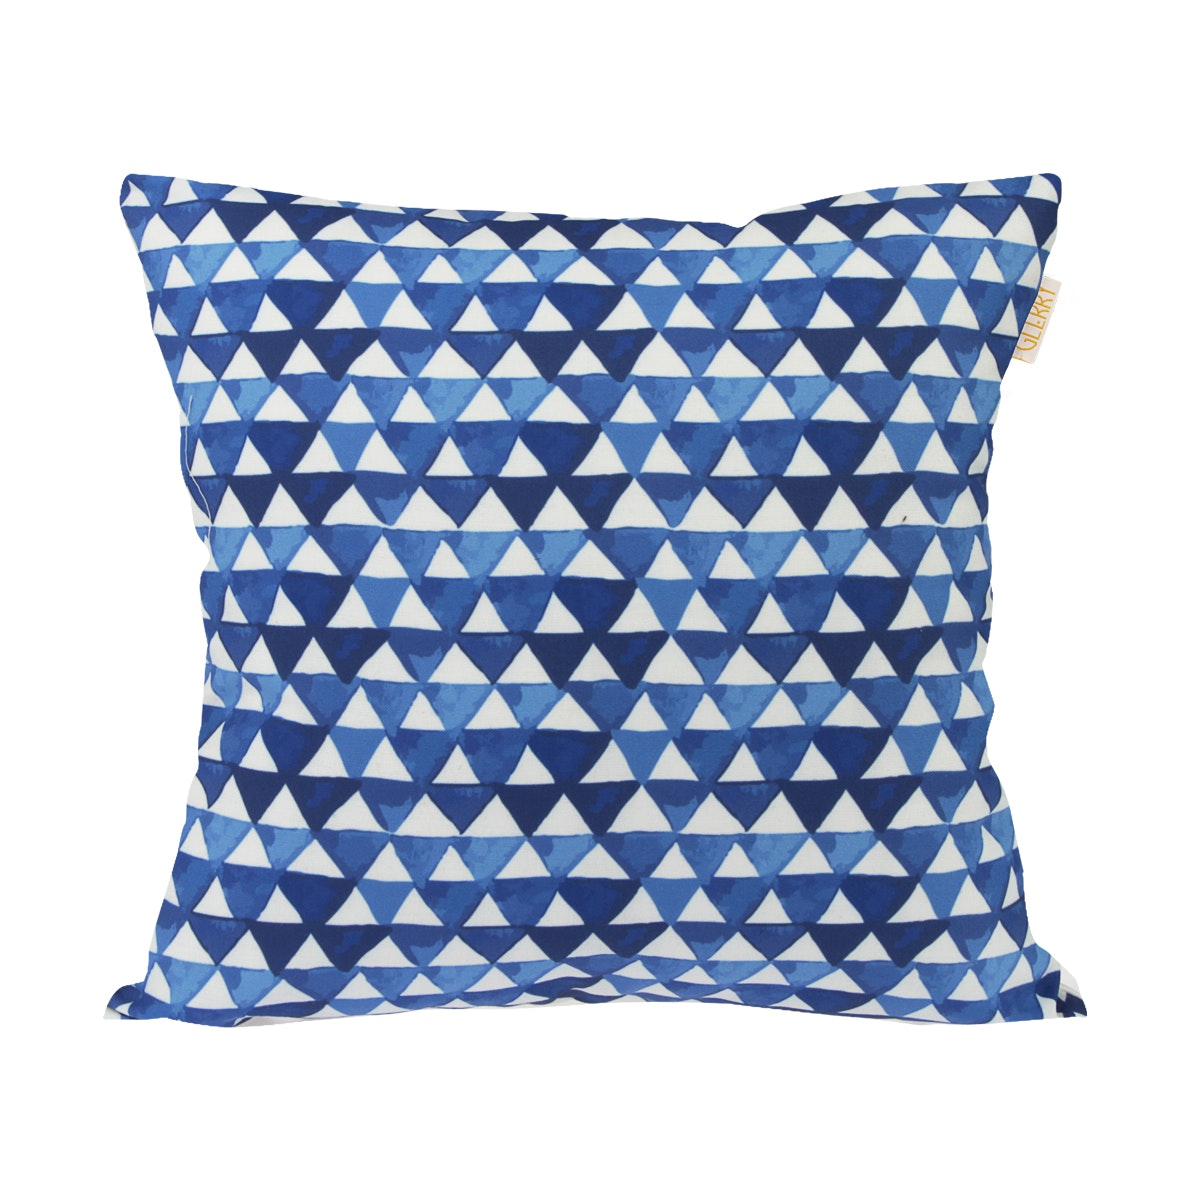 Glerry Home Decor Prismatic Blue Cushion 40x40cm